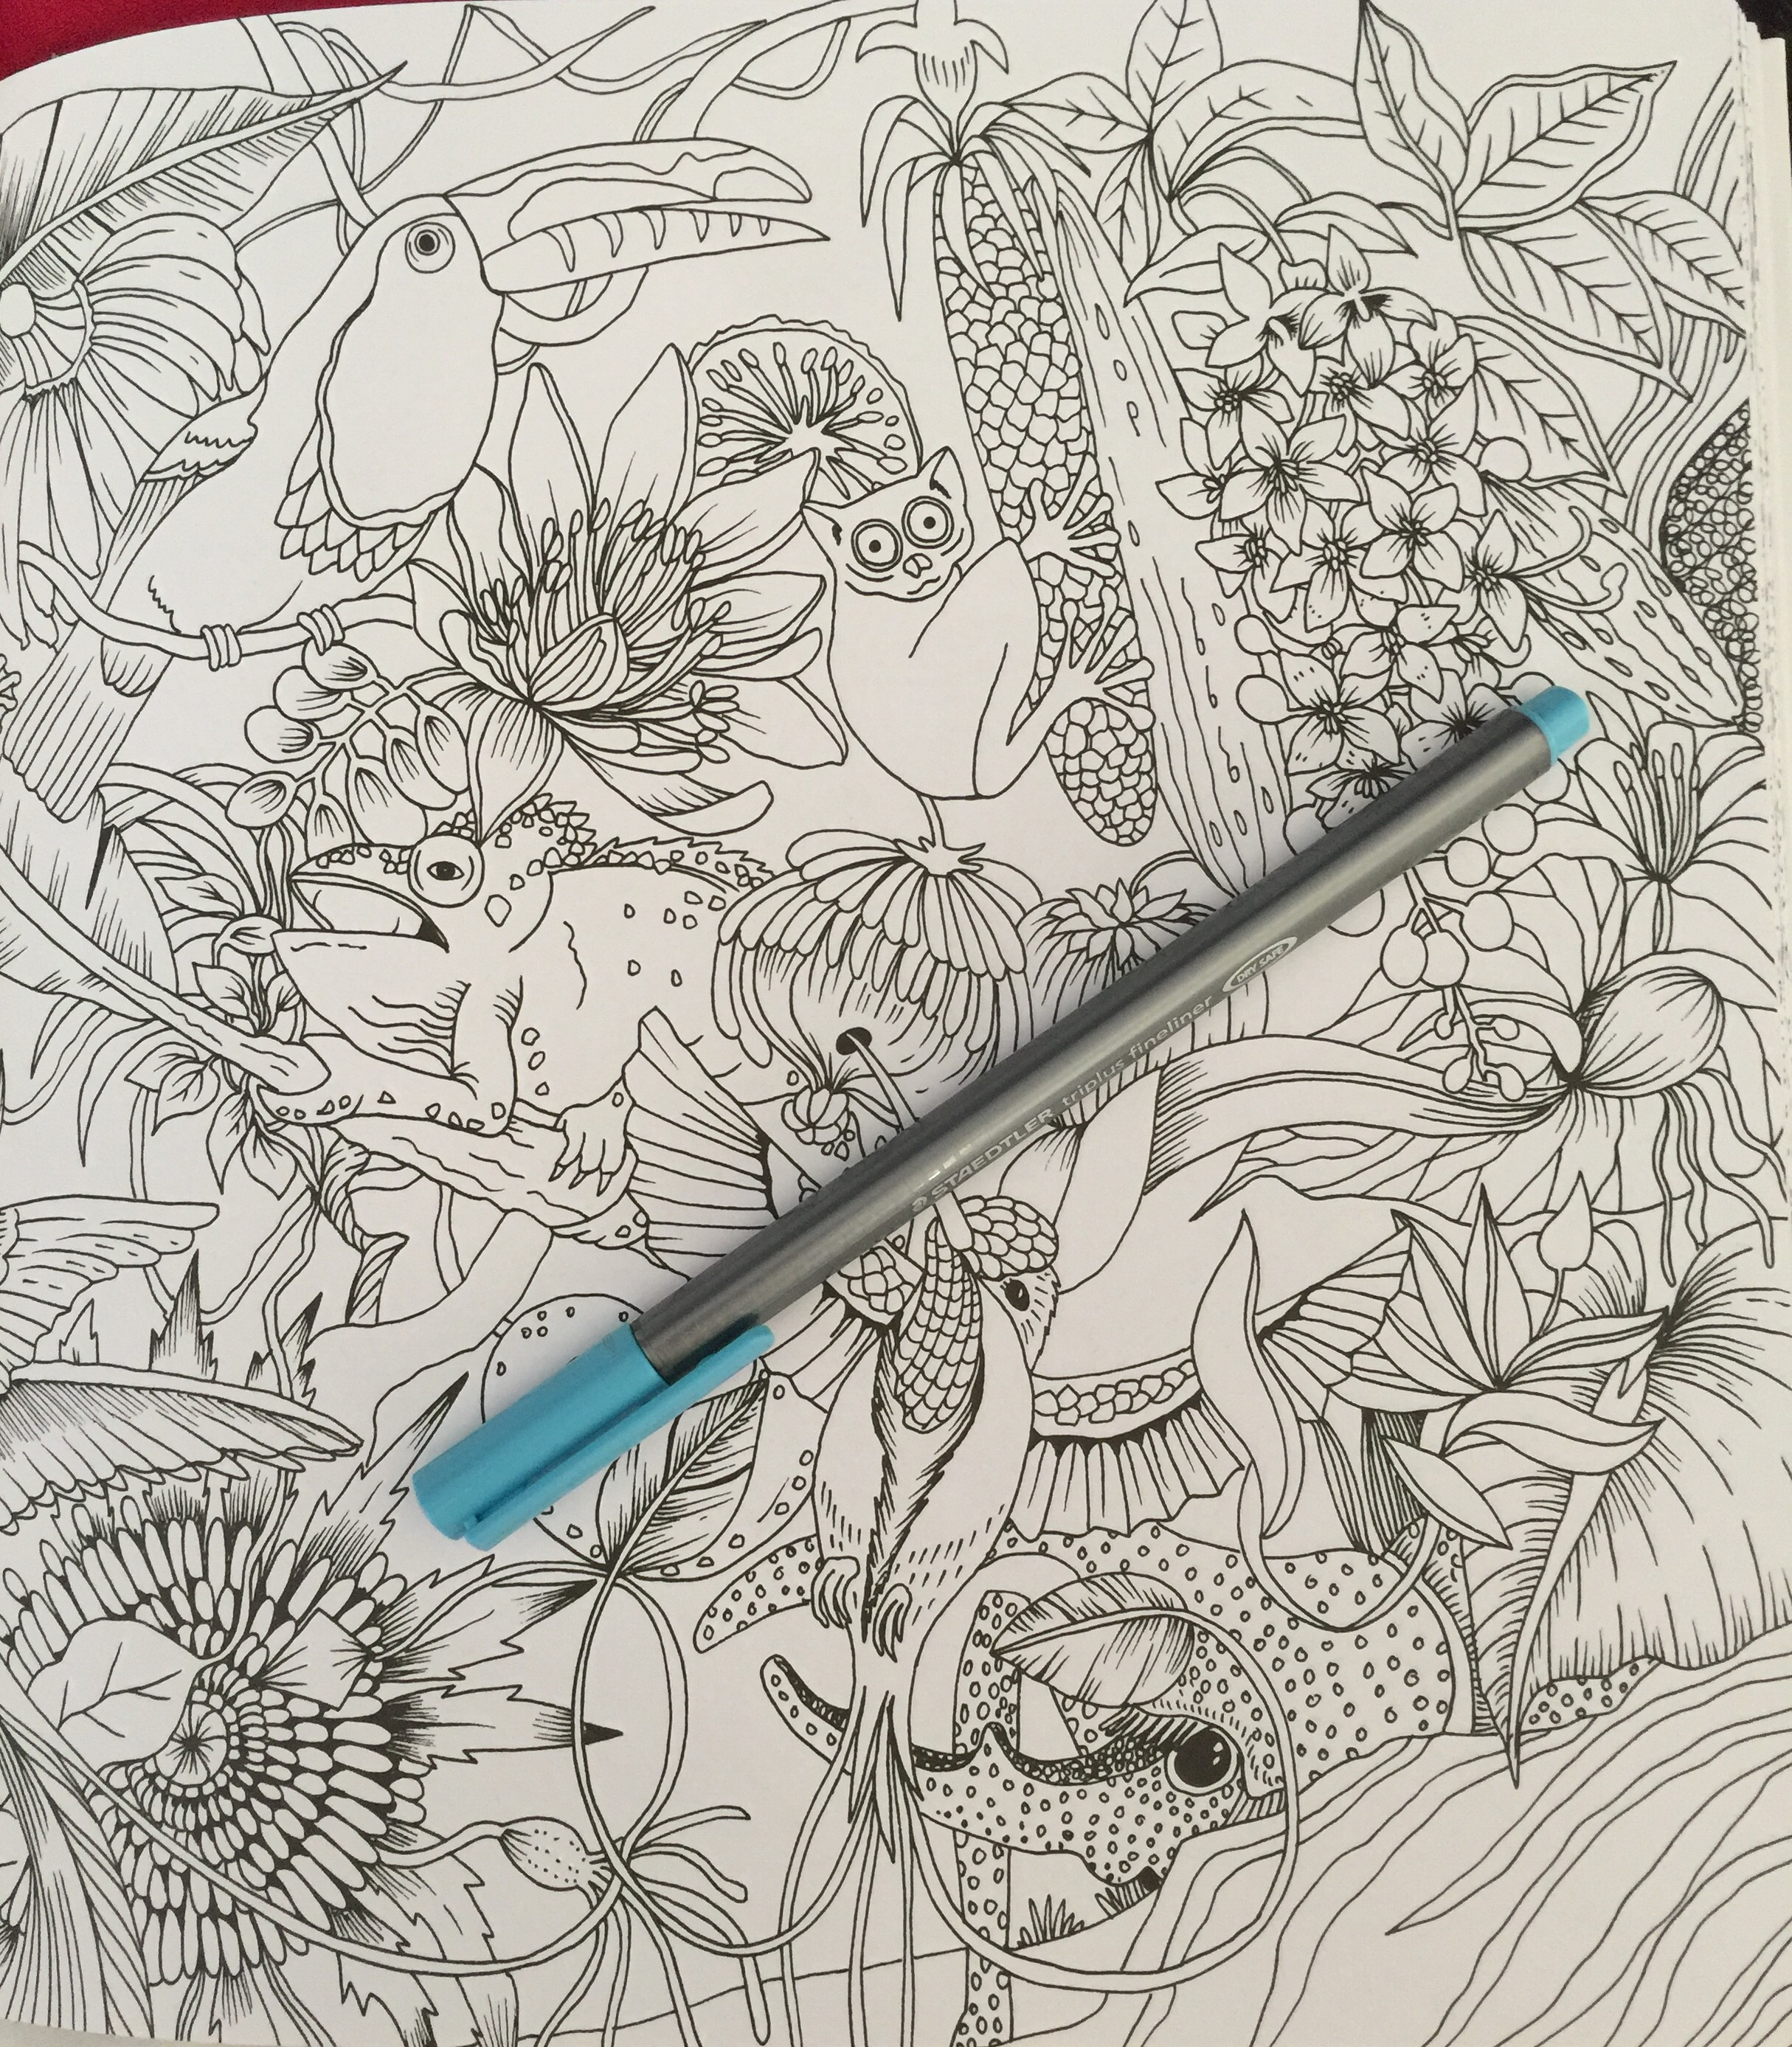 adult colouring complete review art therapy color coloring pencils stress relief mindfulness animals plants